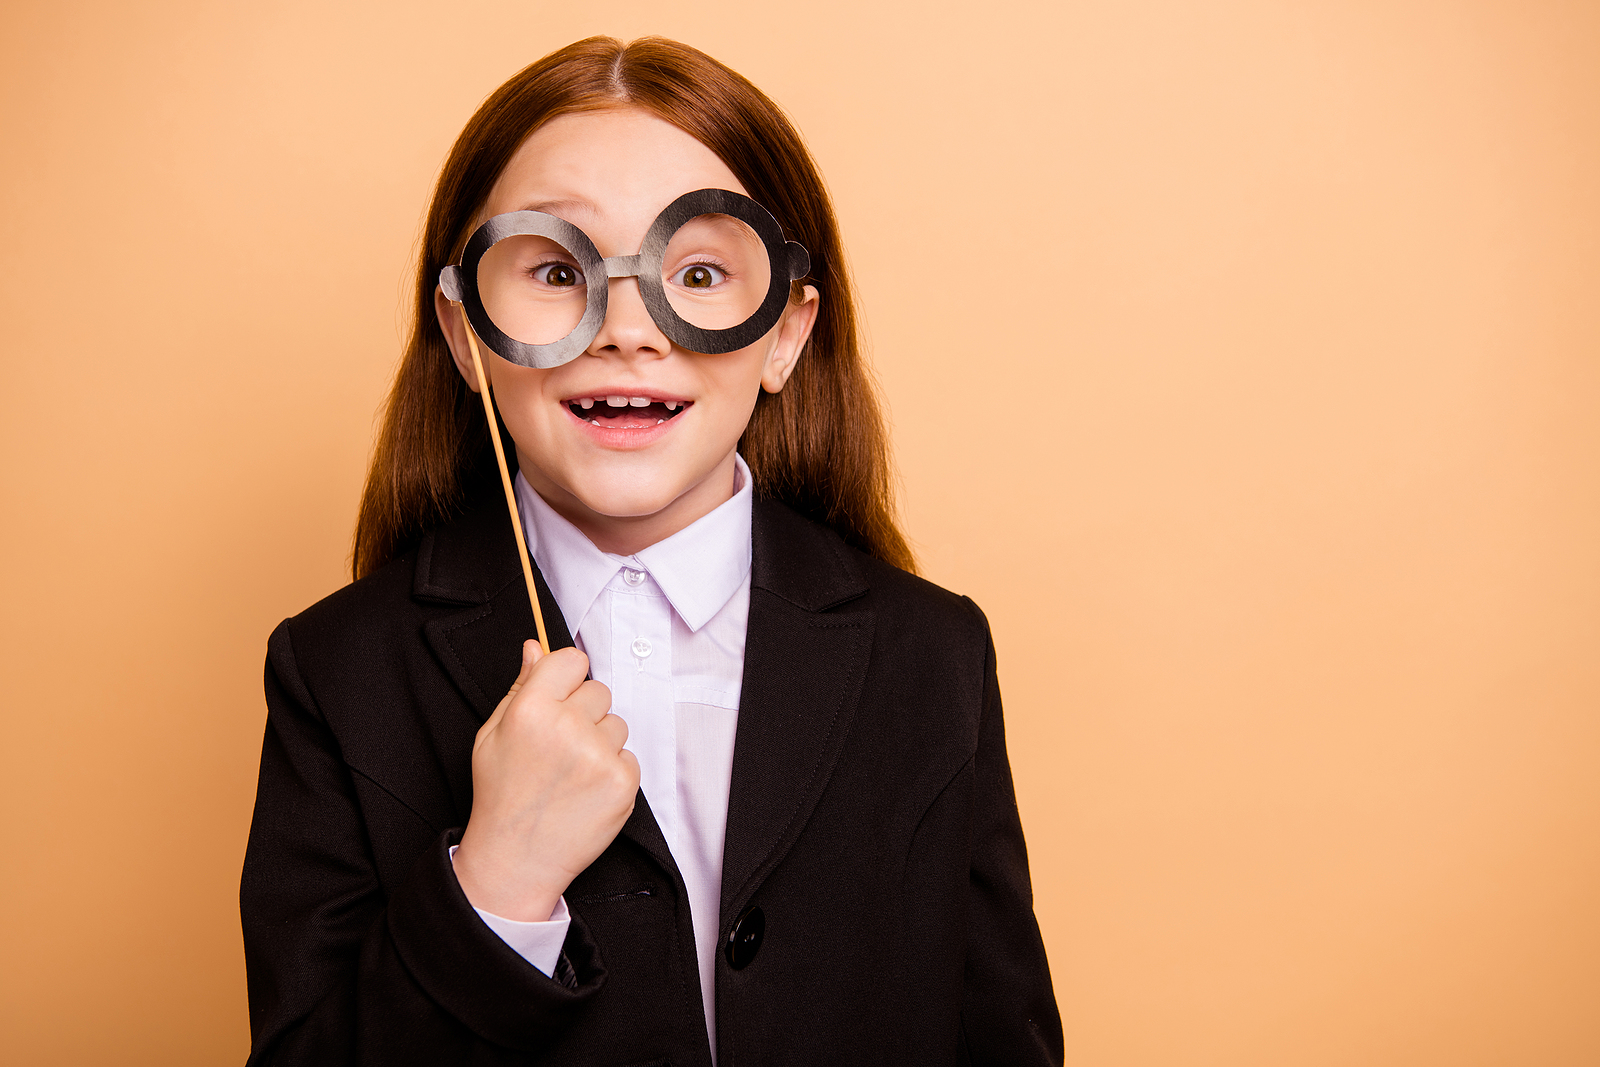 Excited young girl wearing a suit and a photo prop representing how Fit Learning makes Summer learning exciting & becomes an easy way to avoid Summer Brain Drain!